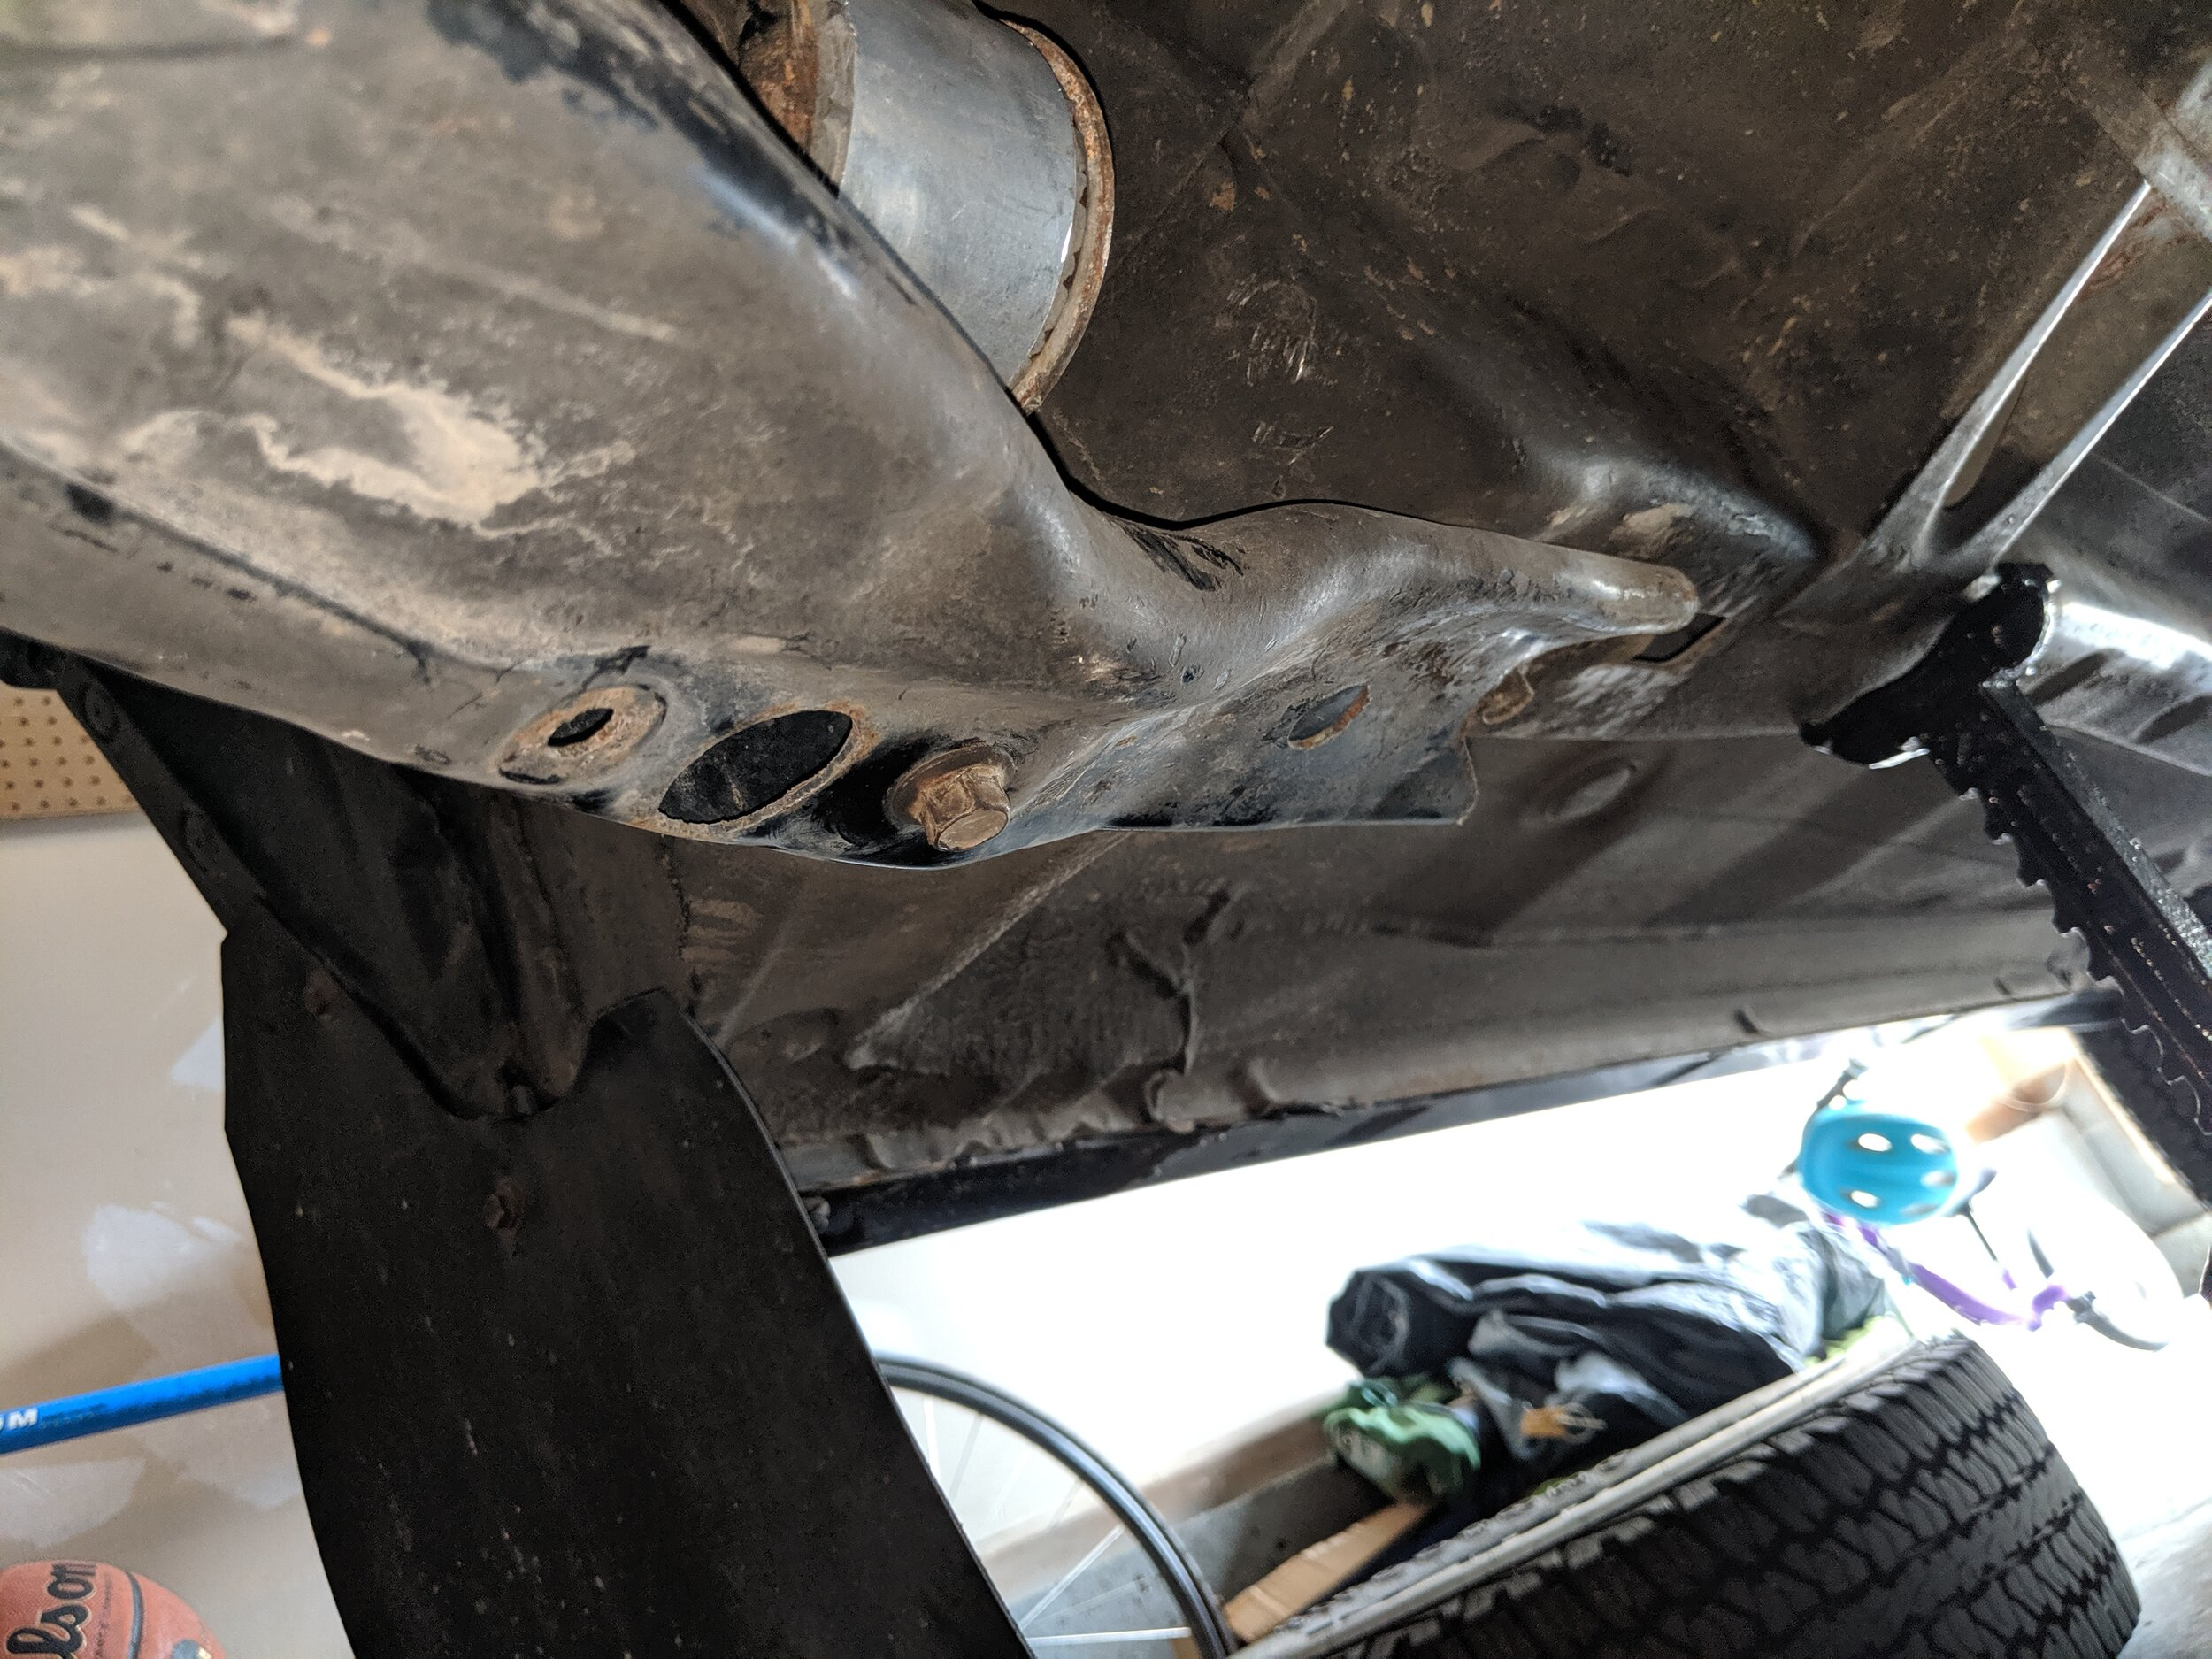 If you aren't removing the subframe there is one of the holes to allow you to loosen the transverse mount and remove the arm. Otherwise you can remove the bolt in the center and far right to complete the removal of the subframe.